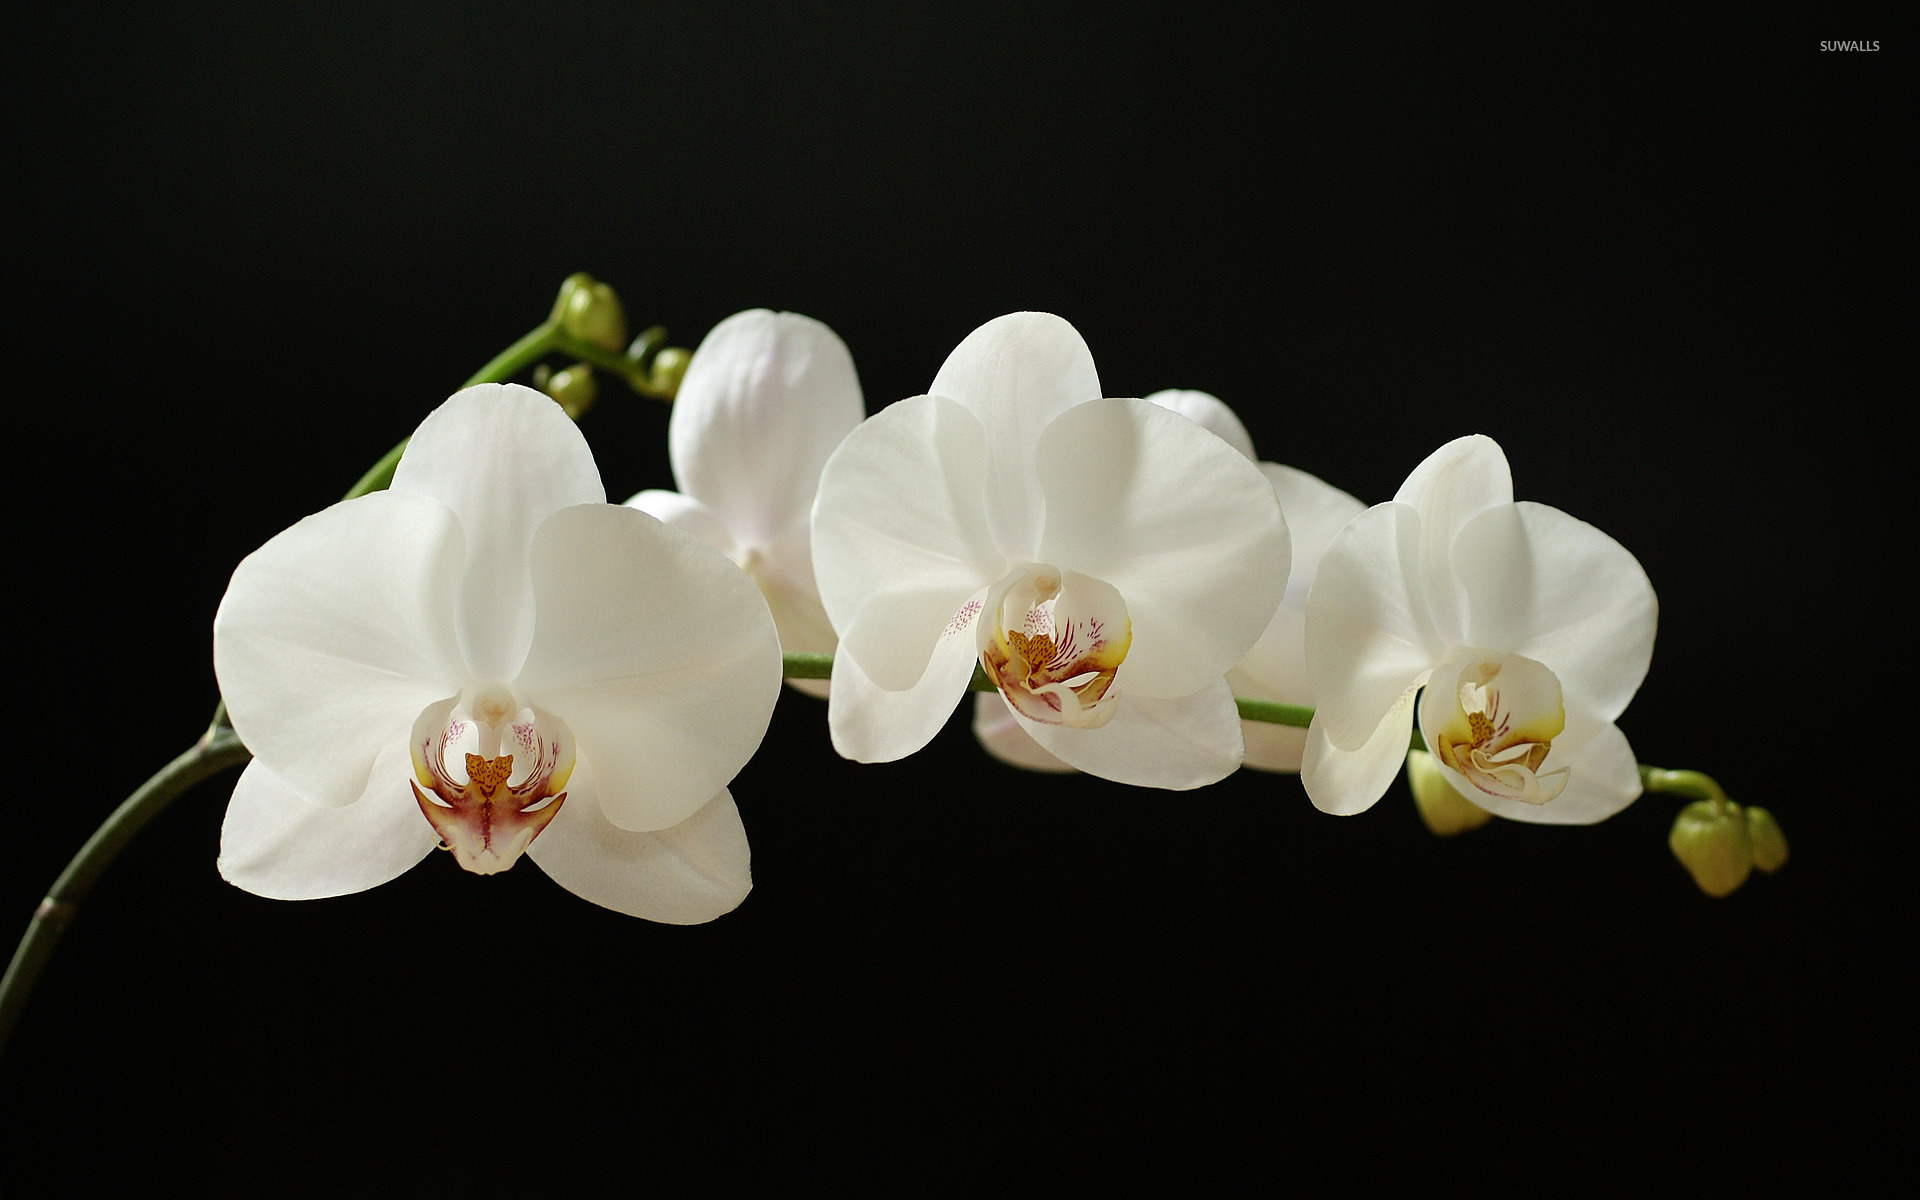 White Orchid , HD Wallpaper & Backgrounds